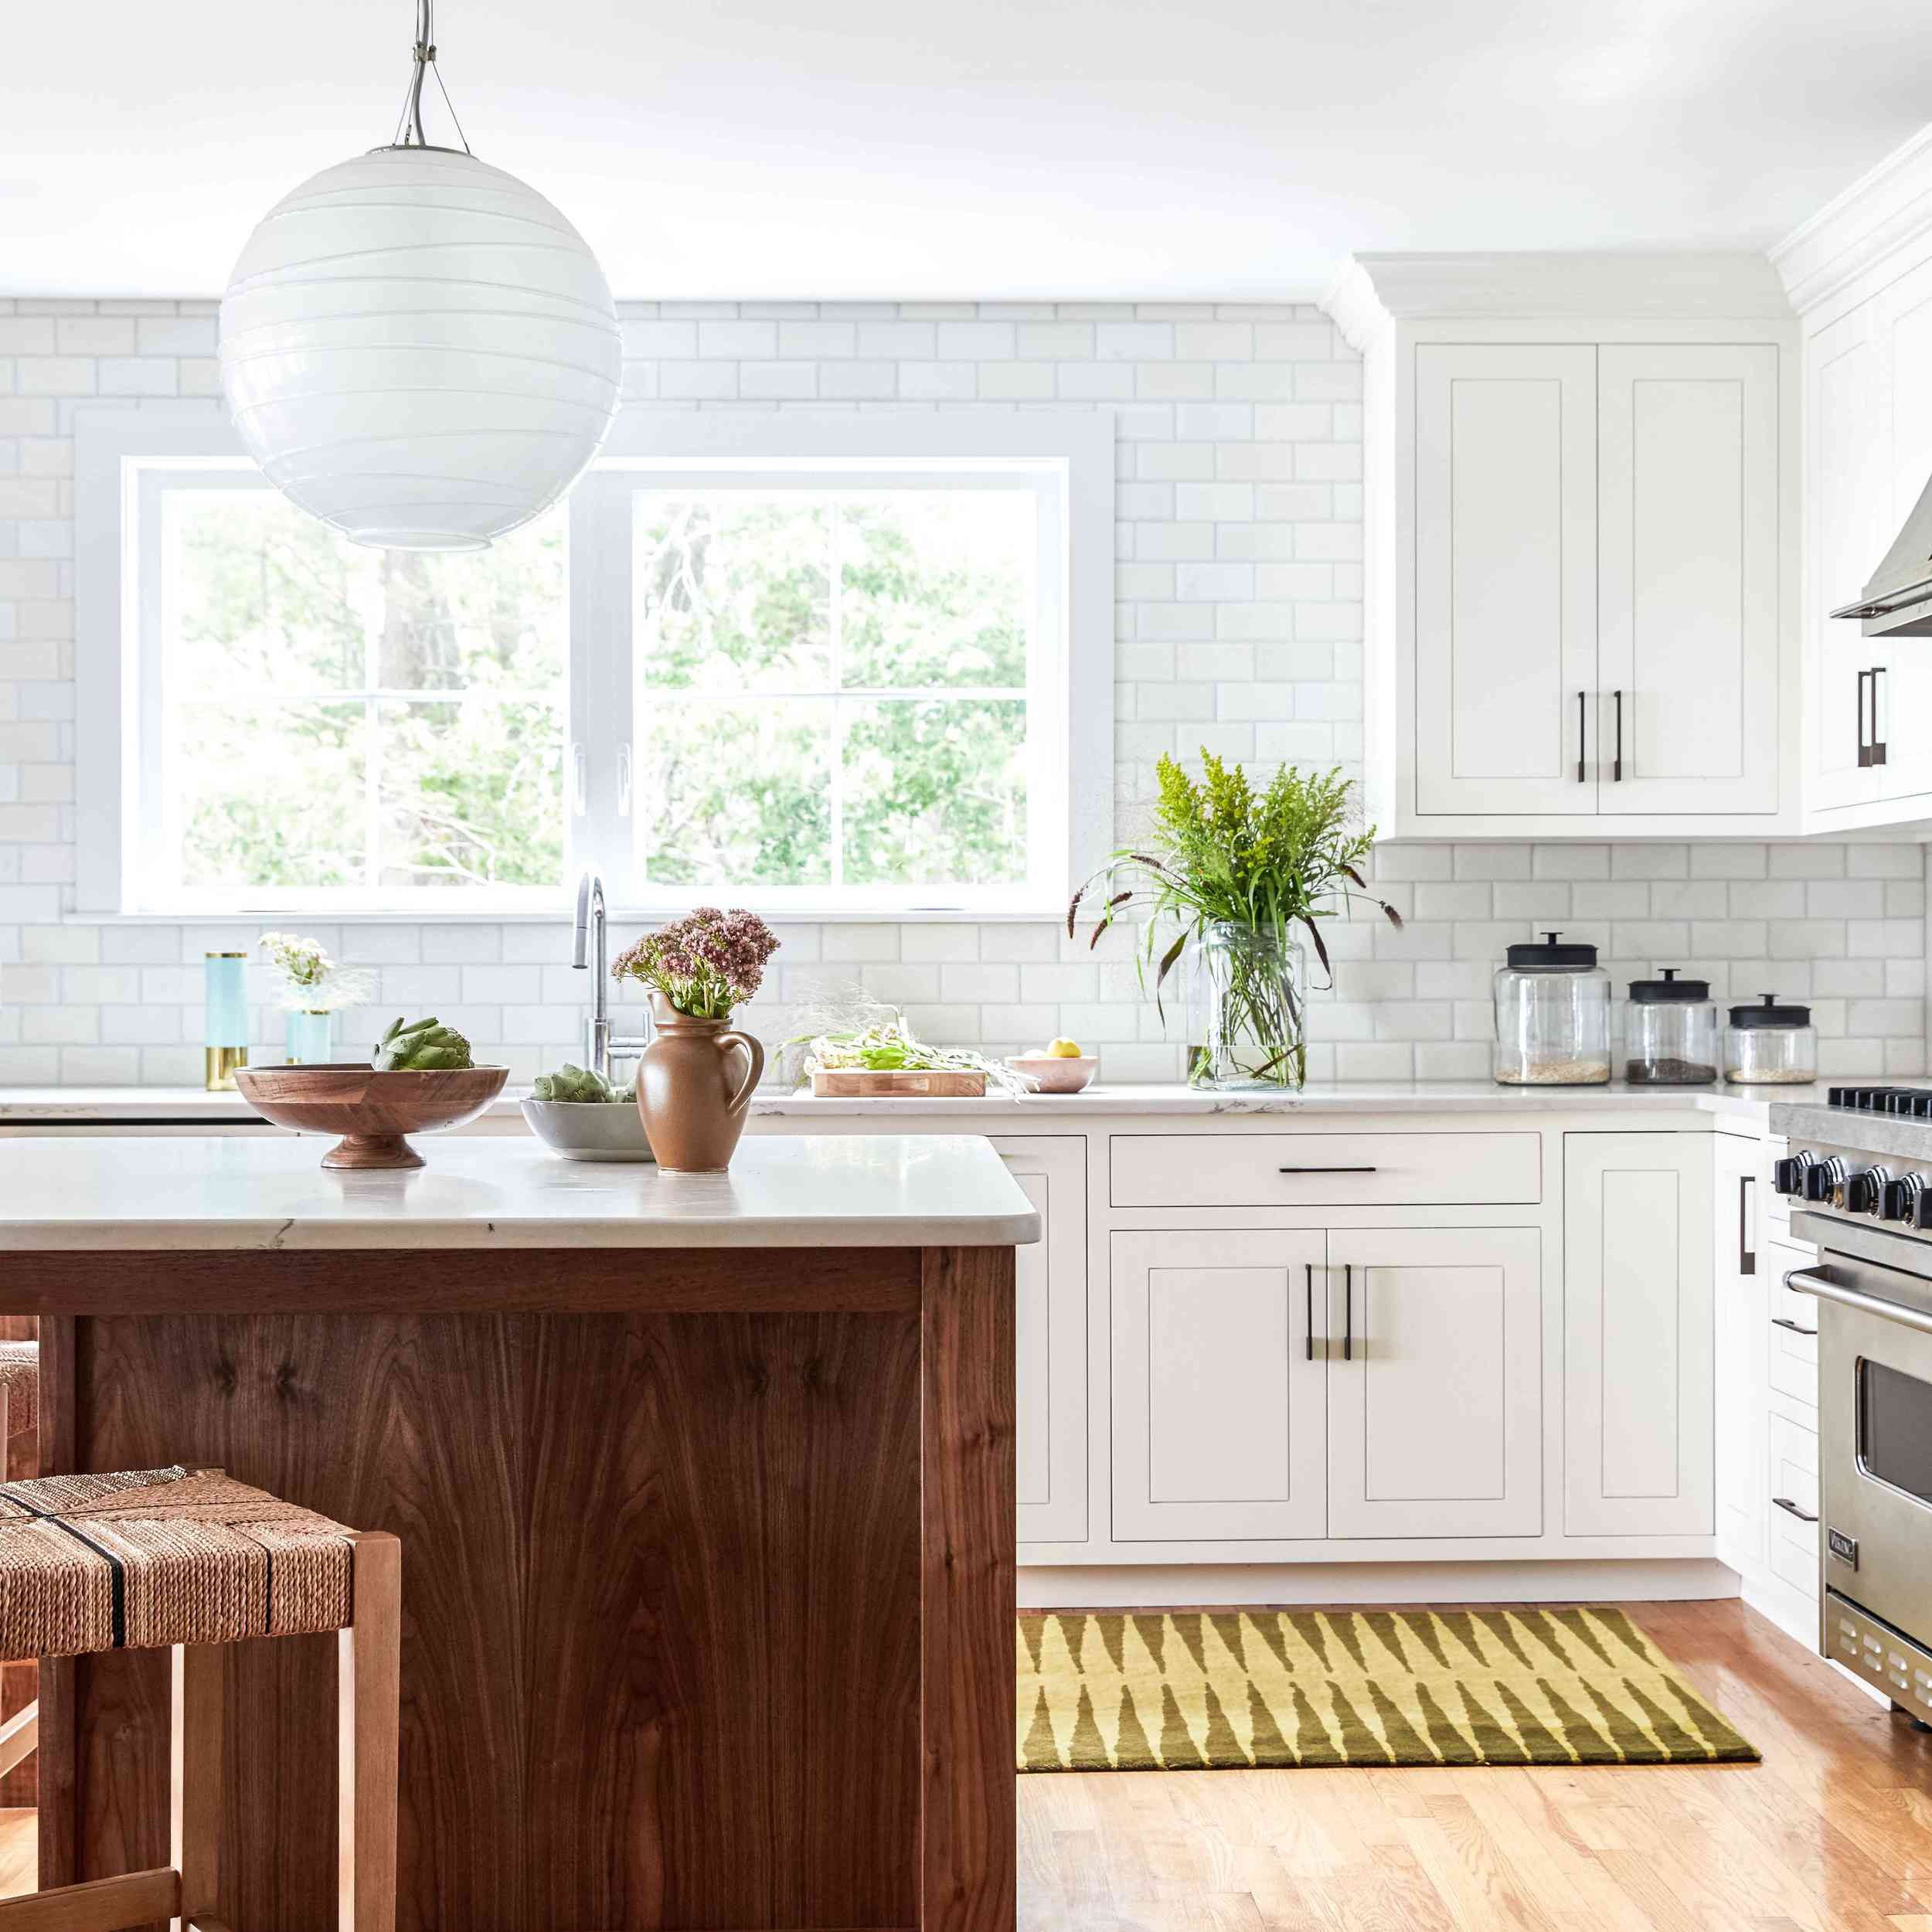 An open-concept kitchen with white cabinets and a yellow printed rug